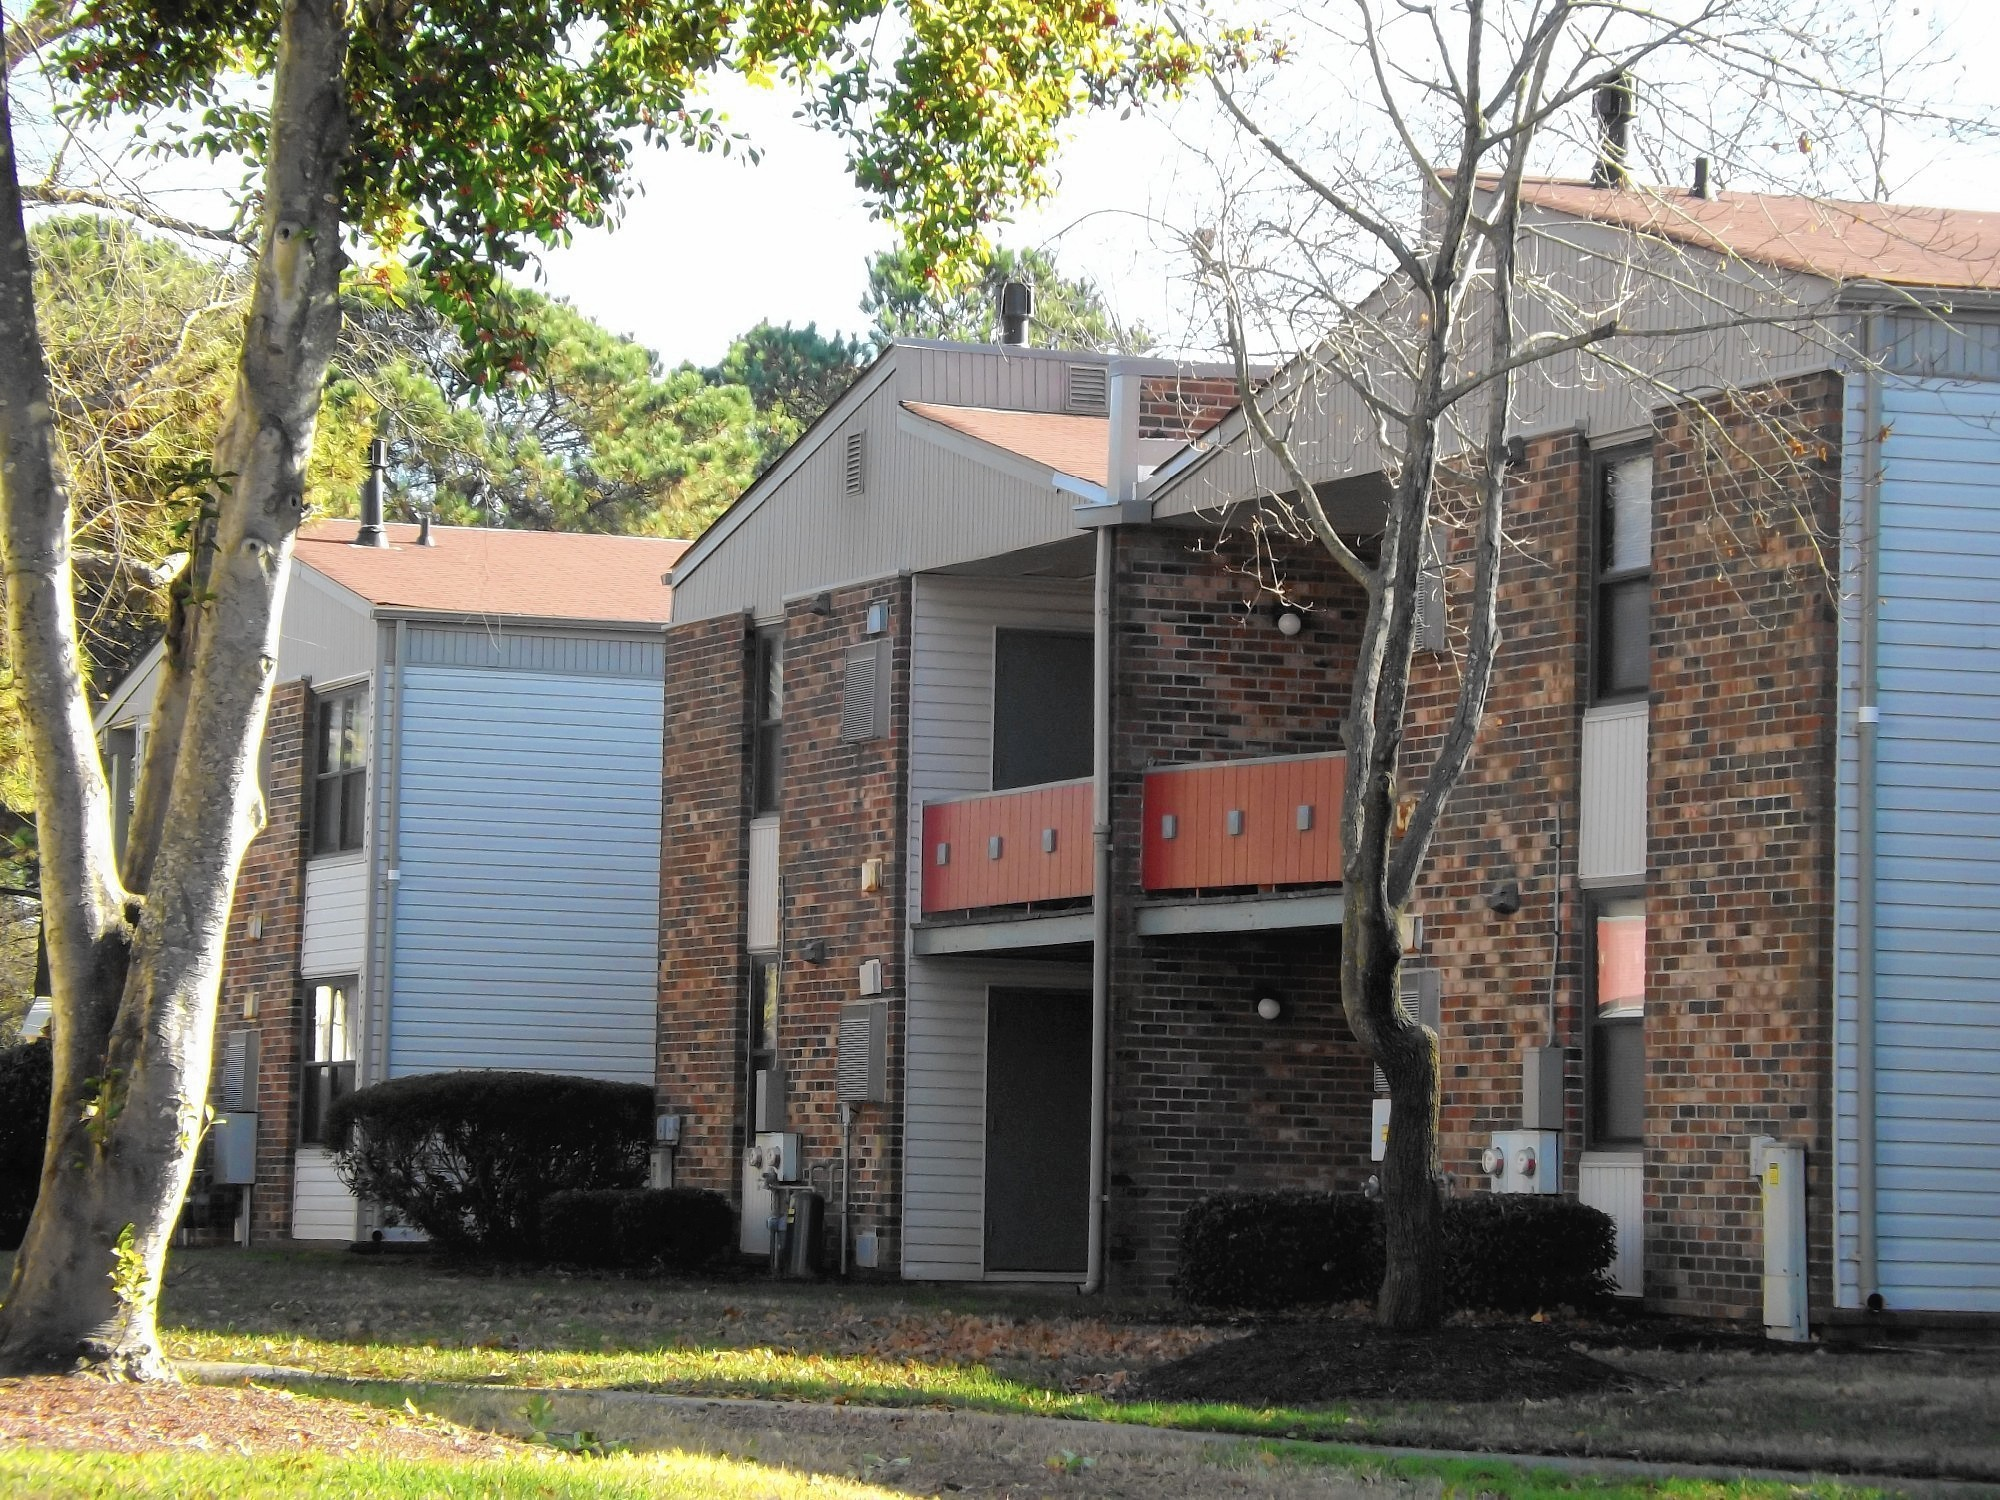 Langley Square Apartments In Hampton Sold To N.Y. Investors   Daily Press